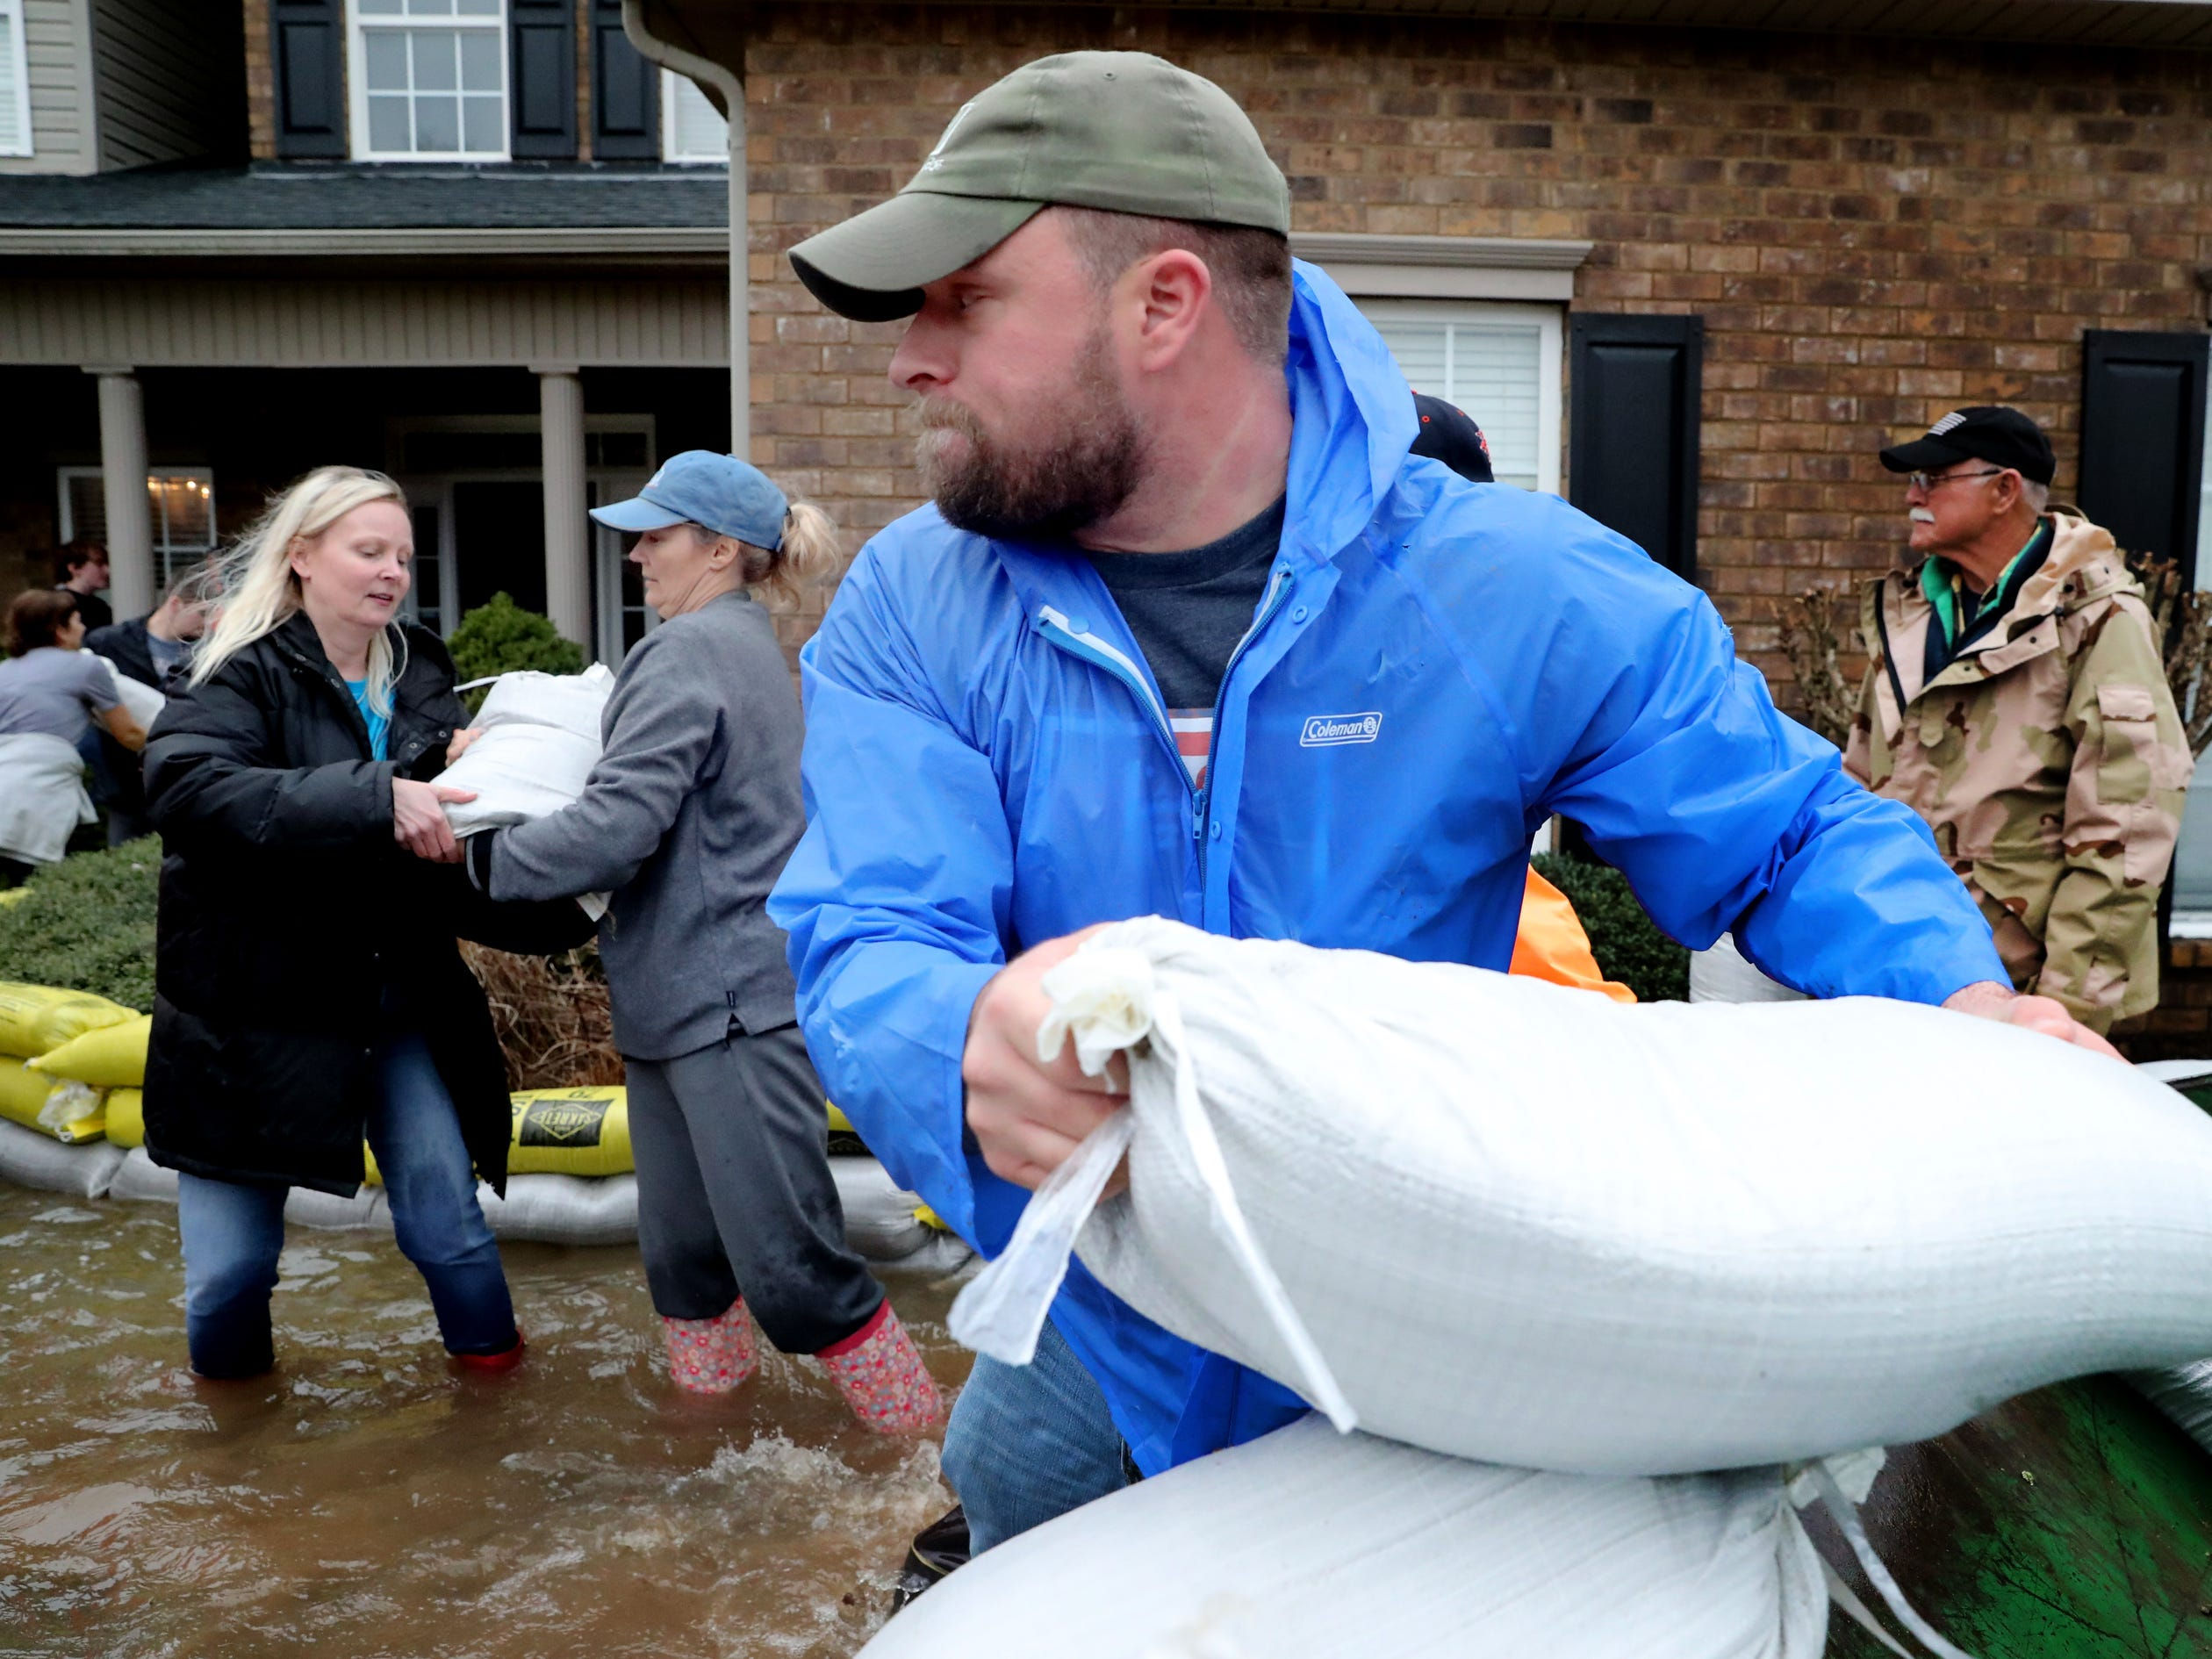 Michael Derby helps out neighbors with sand bags during flooding in Murfreesboro on Saturday, Feb. 23, 2019.